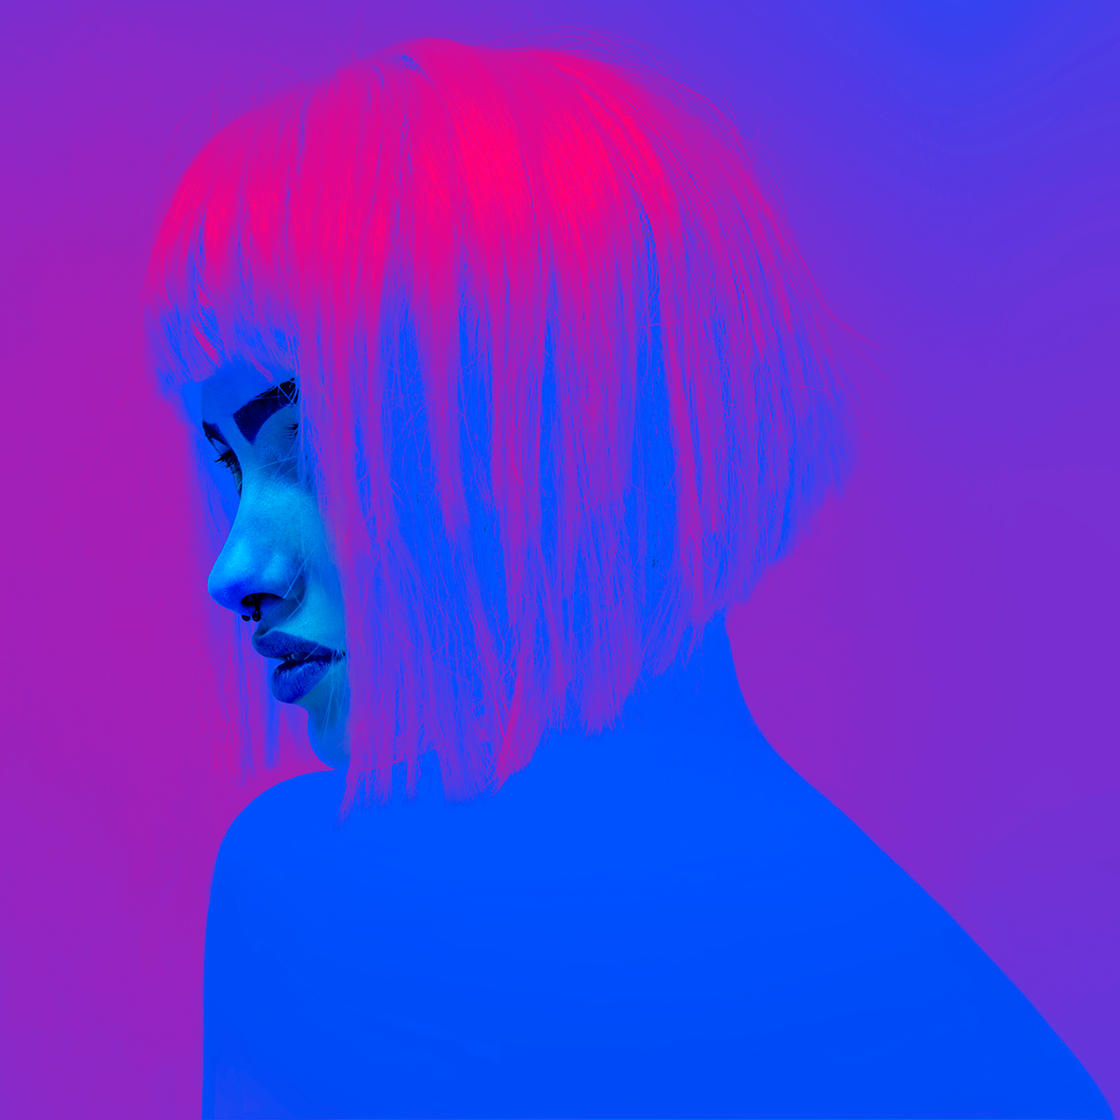 Neon Girls – The captivating and sensual photos of Local Preacher